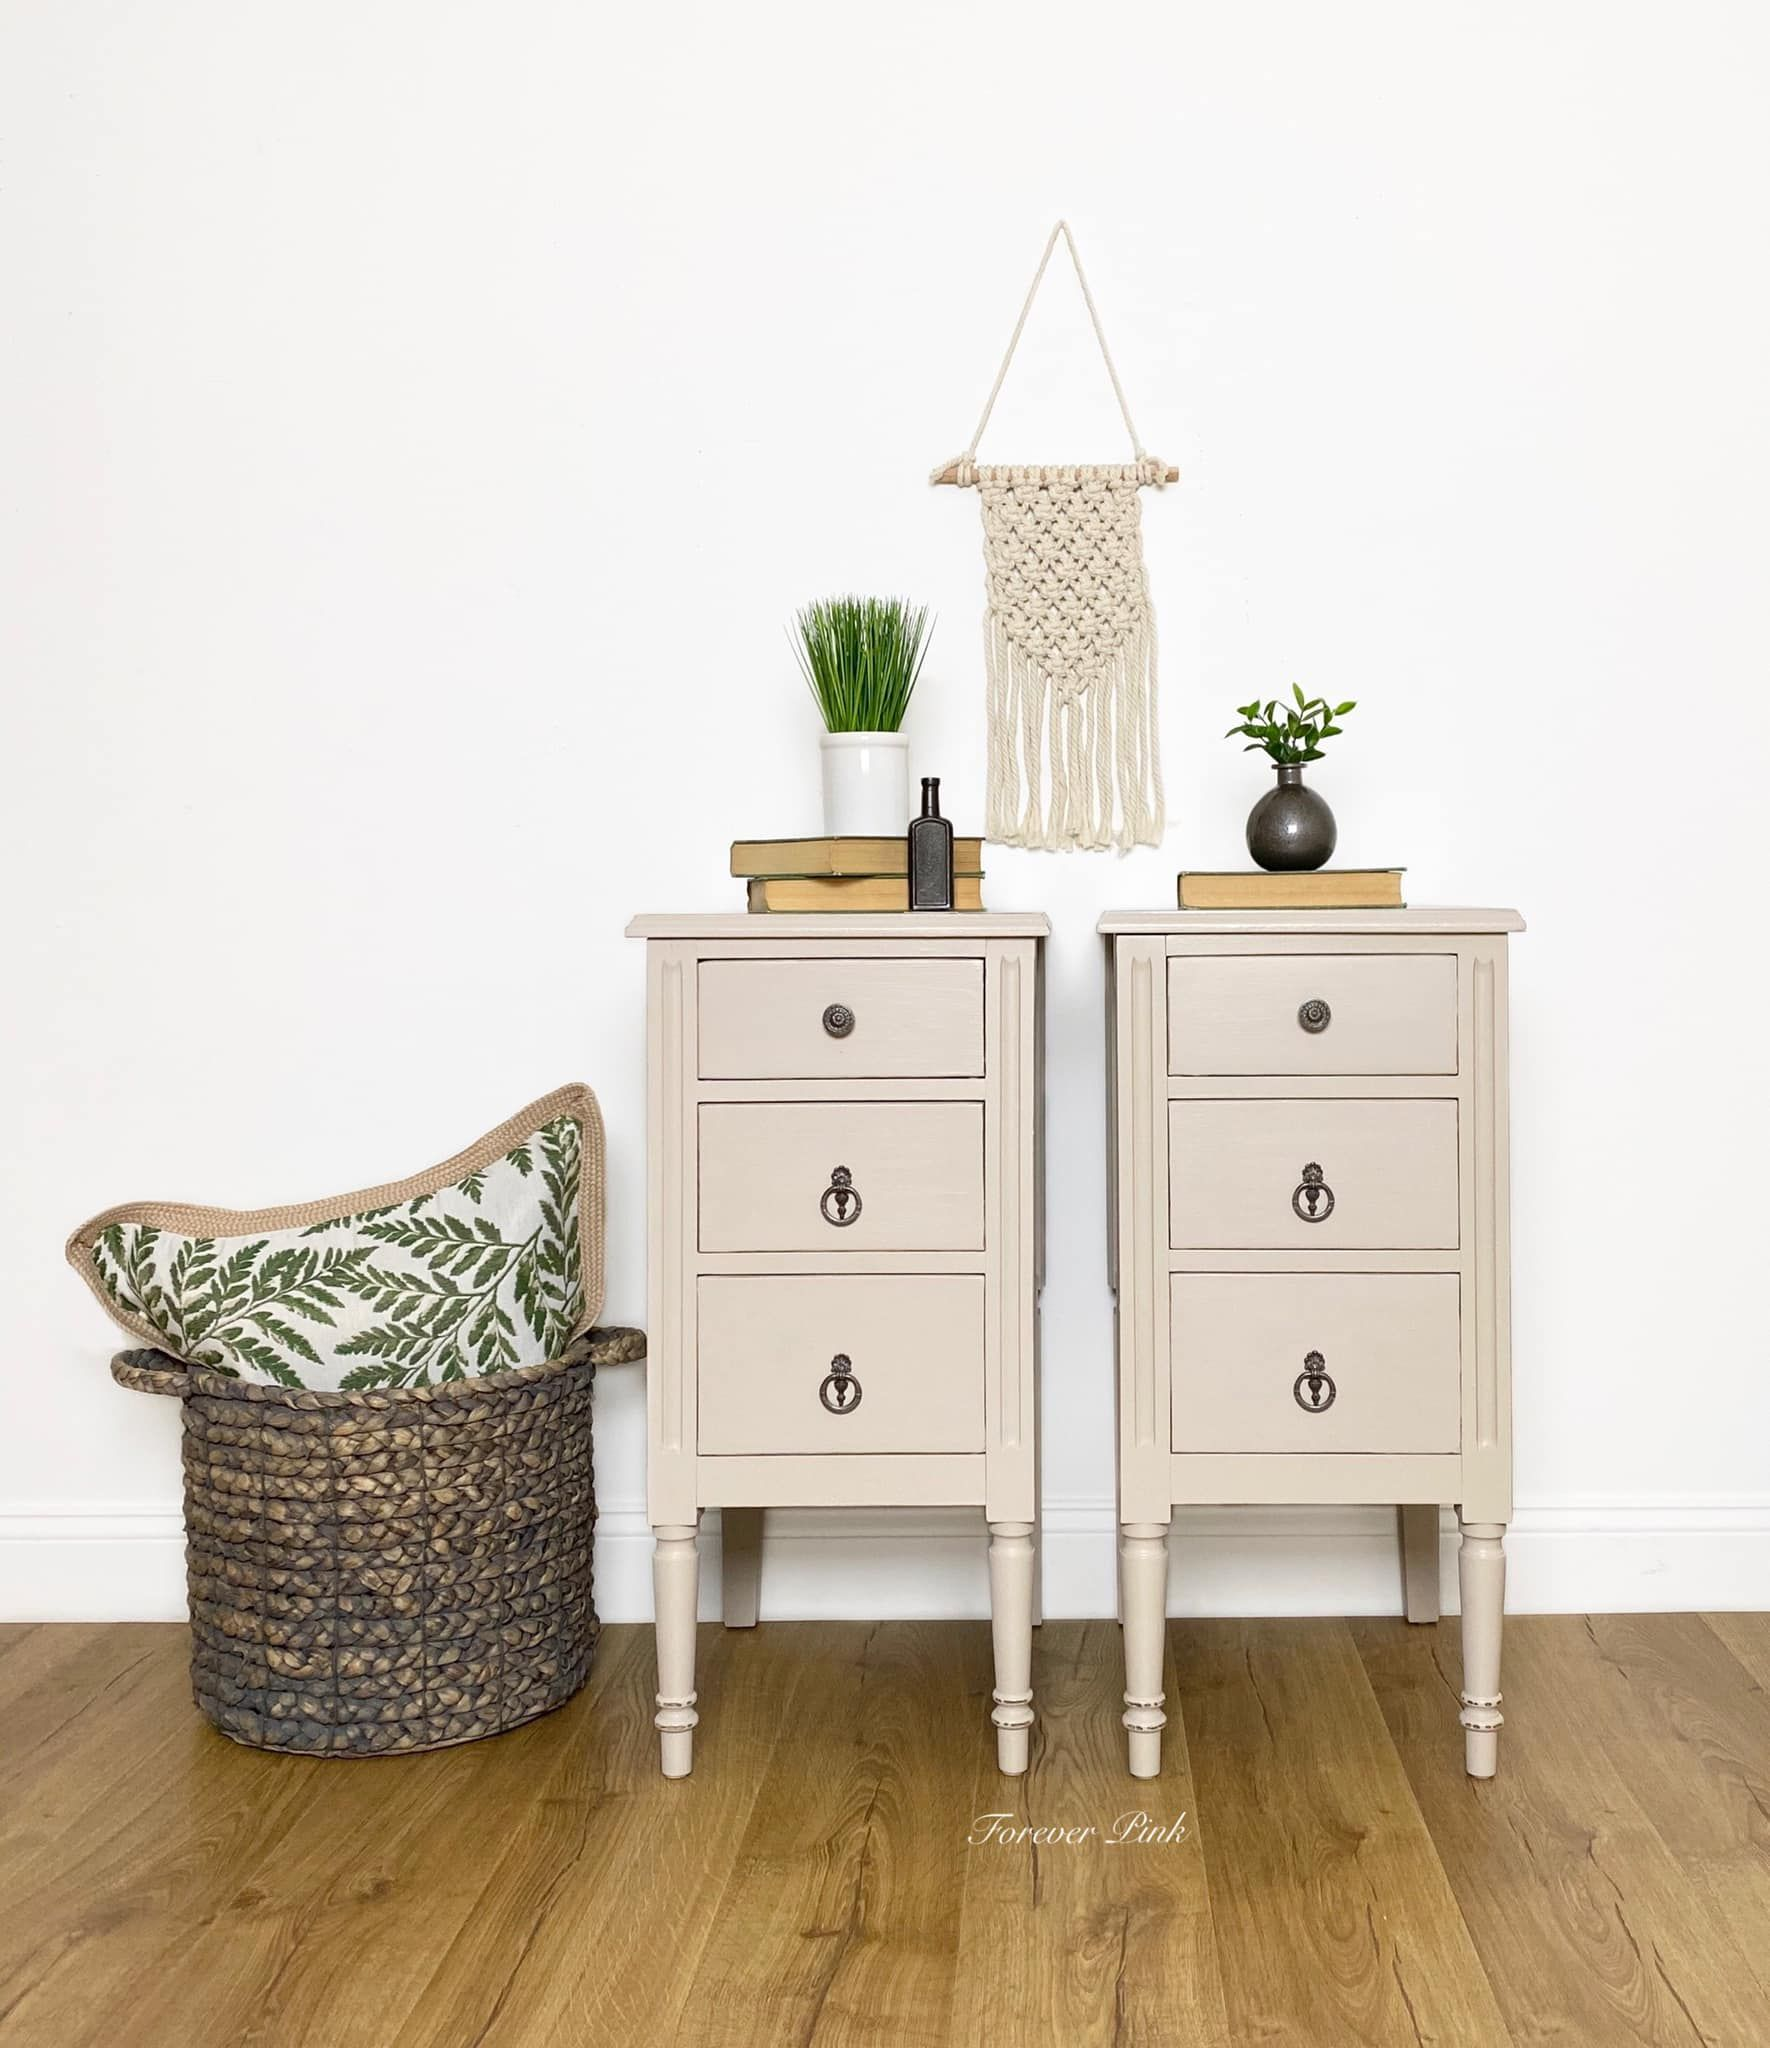 Pair of Accent/Storage Tables in Pop The Bubbly